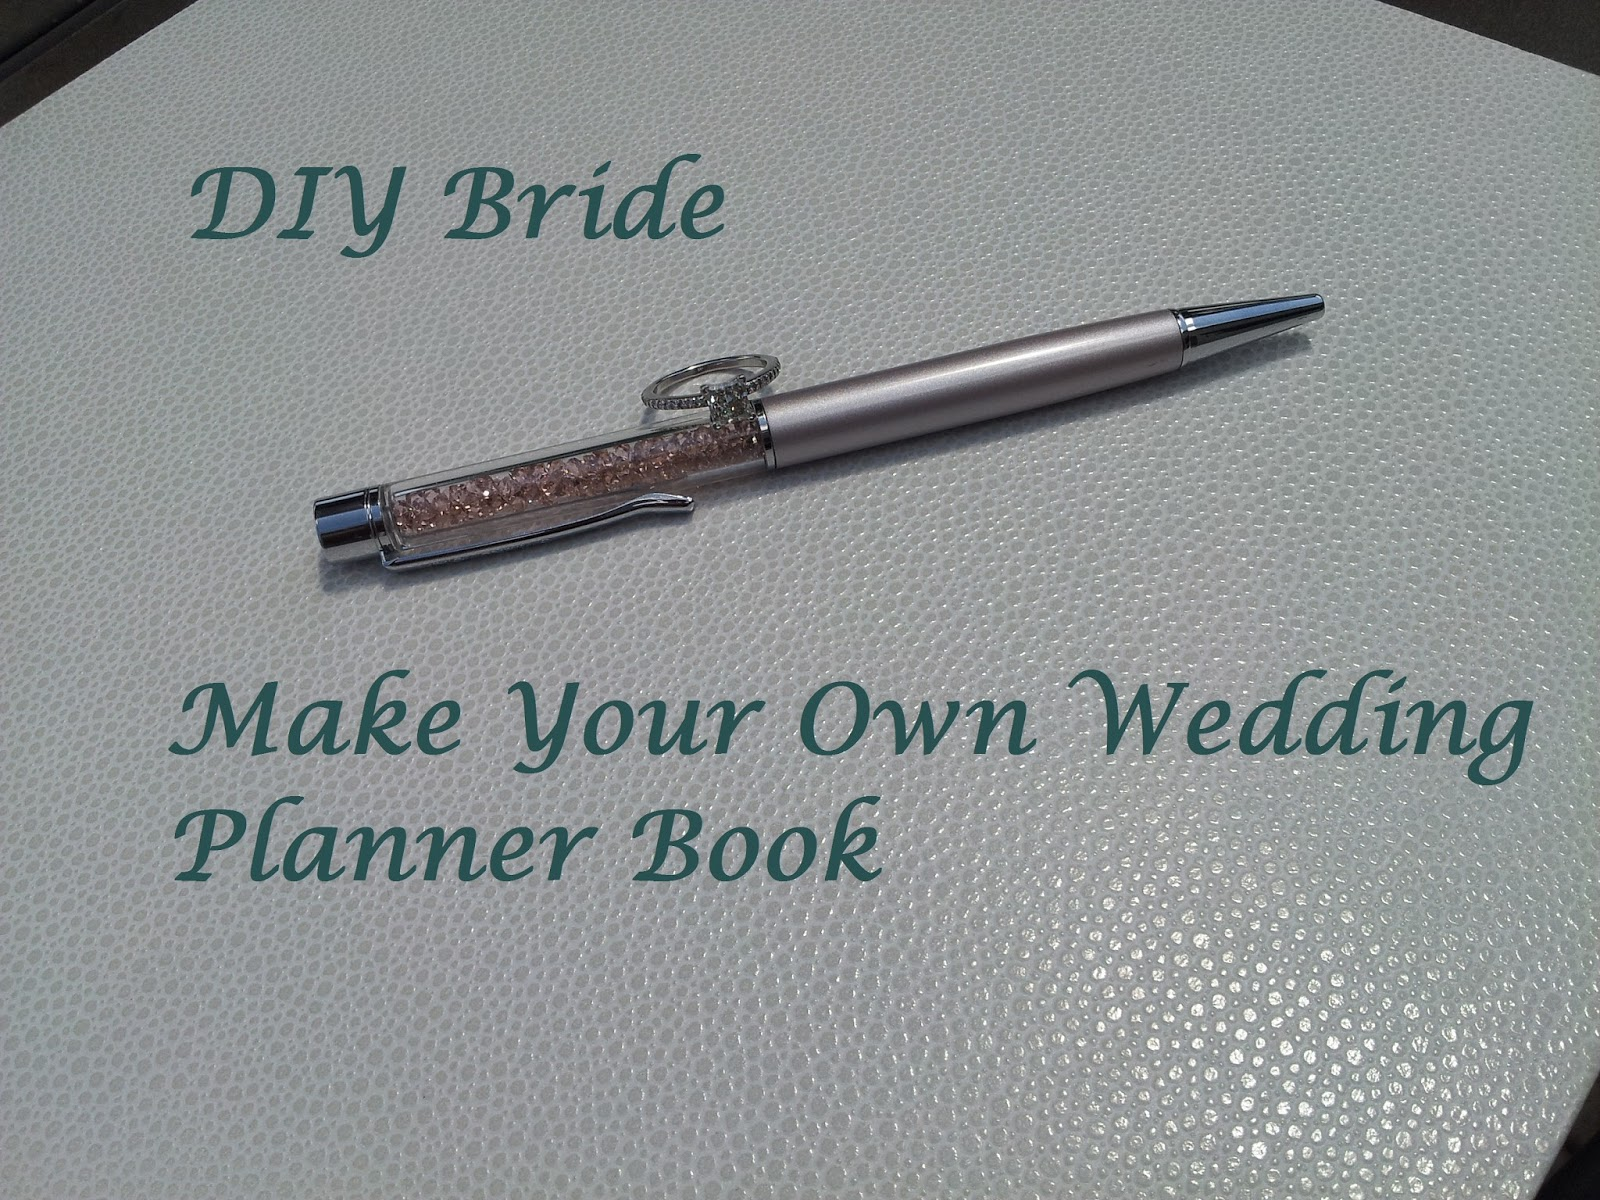 Sleepless in diy bride country how to make your own for Create your own planner online